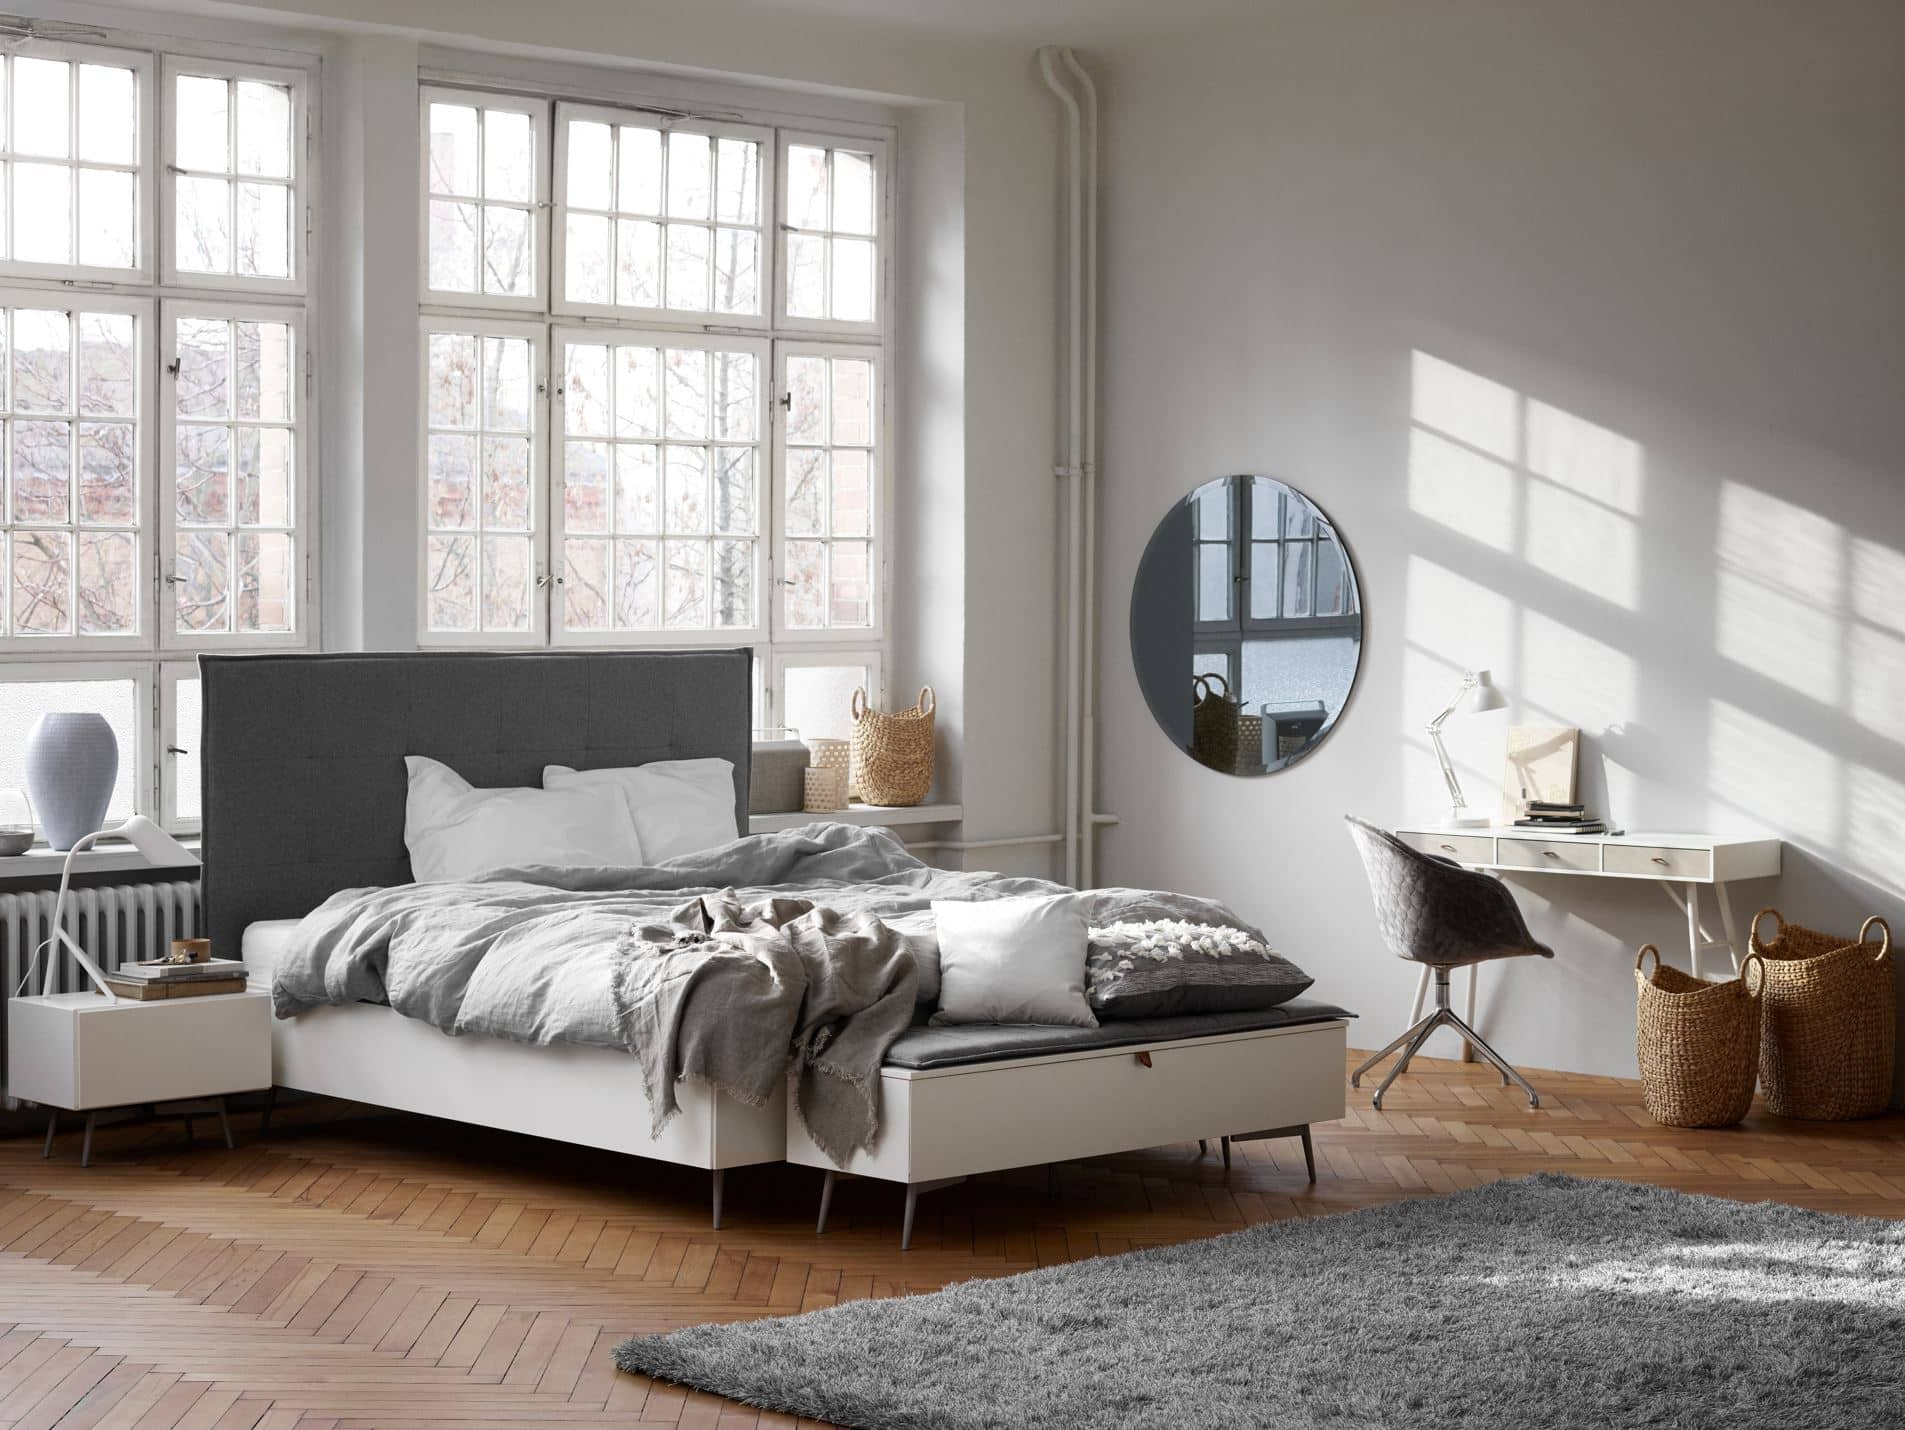 Full Size of Lugano Design Bett By Boconcept Experience Ausklappbar Betten Bei Ikea Home Affaire Mit Stauraum 160x200 Selber Bauen 140x200 Big Sofa Schlaffunktion 1 40x2 00 Wohnzimmer Bett Mit überbau